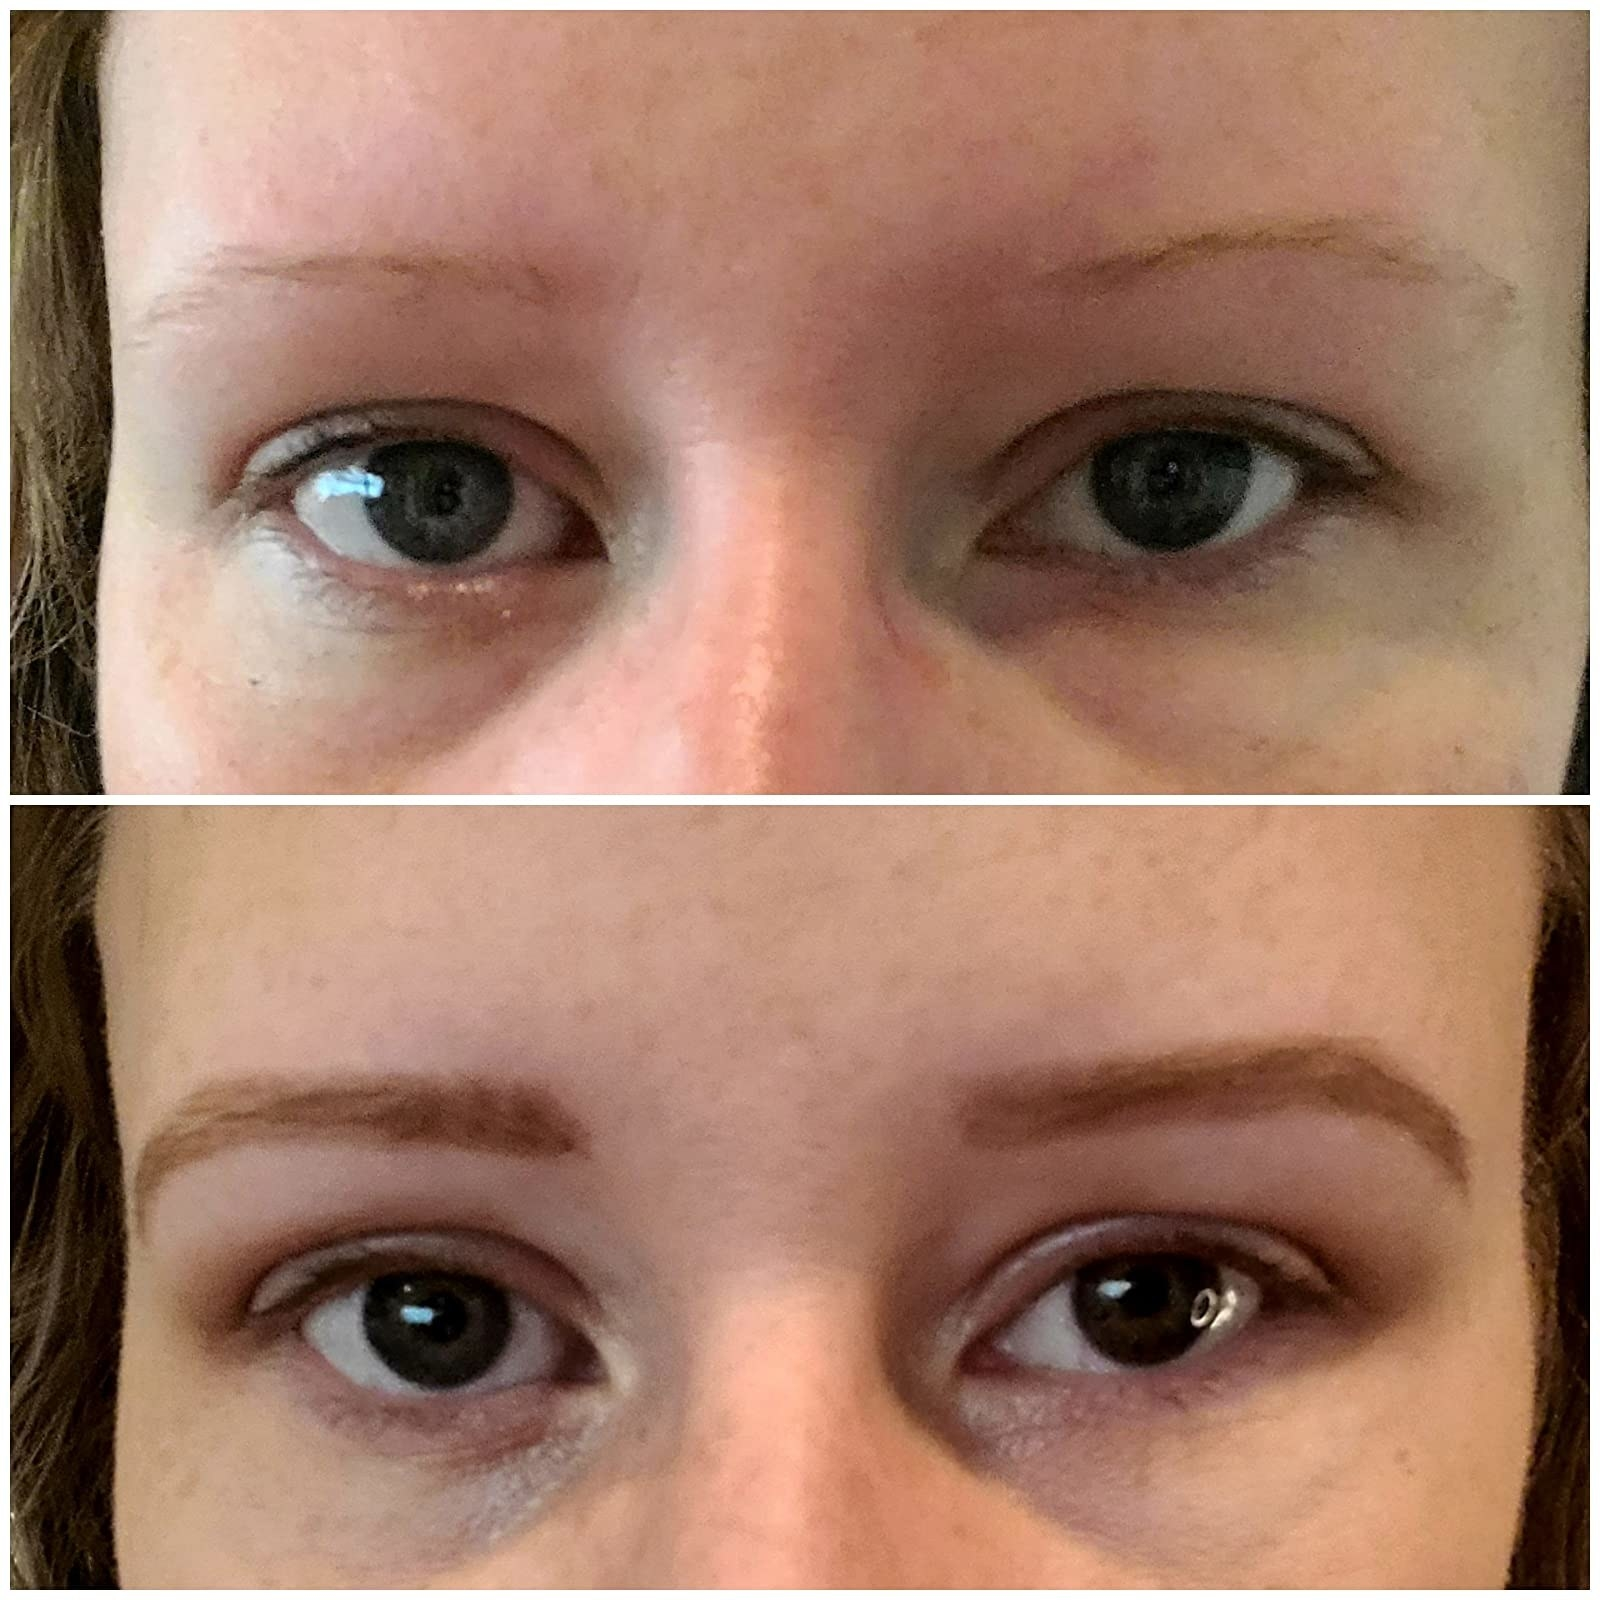 on top, reviewer with sparse auburn eyebrows. on bottom, reviewer with more defined auburn brows after using the brow pencil above